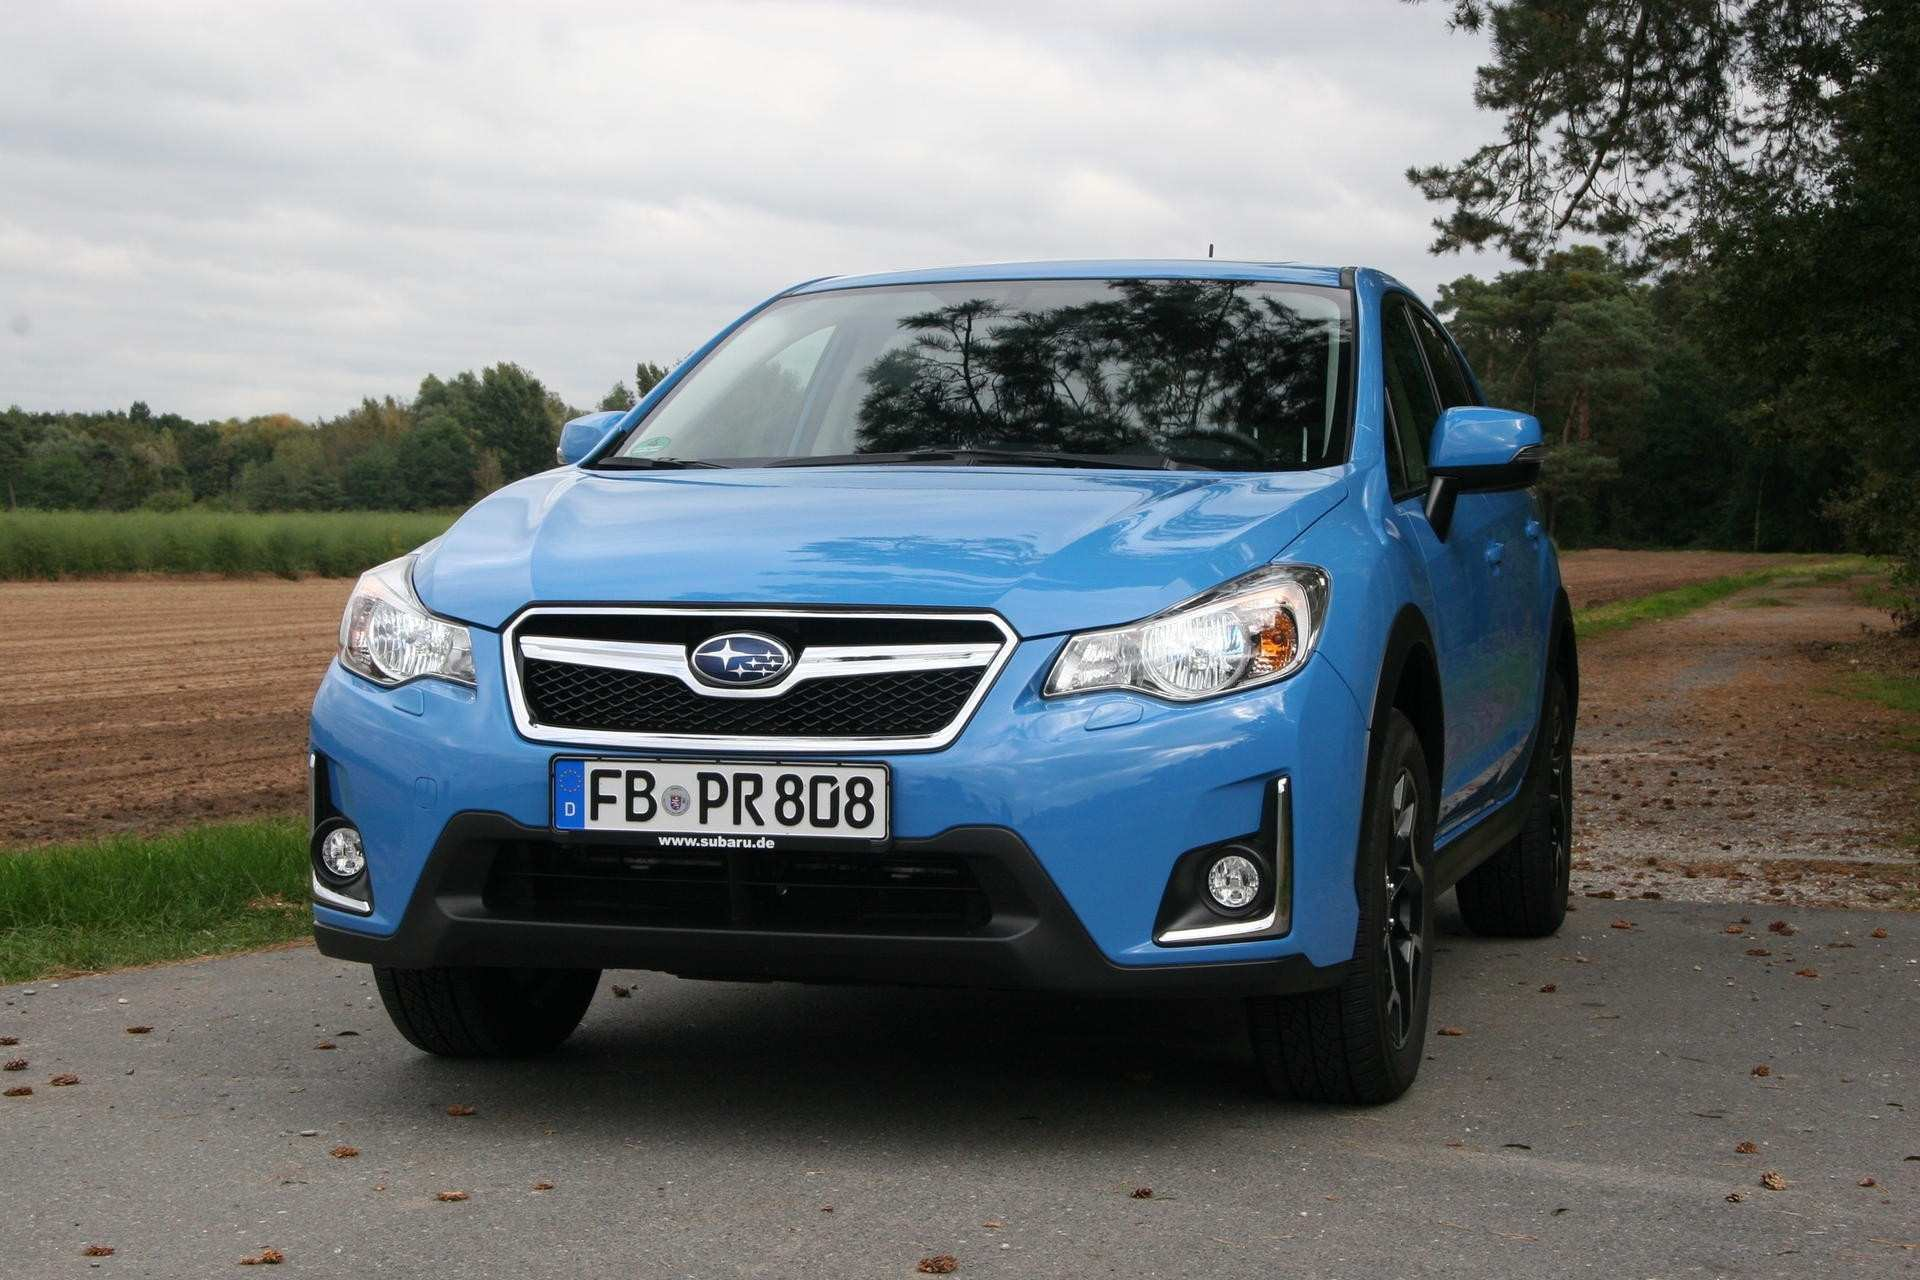 55 A Subaru Impreza 2020 Release Date Specs And Review